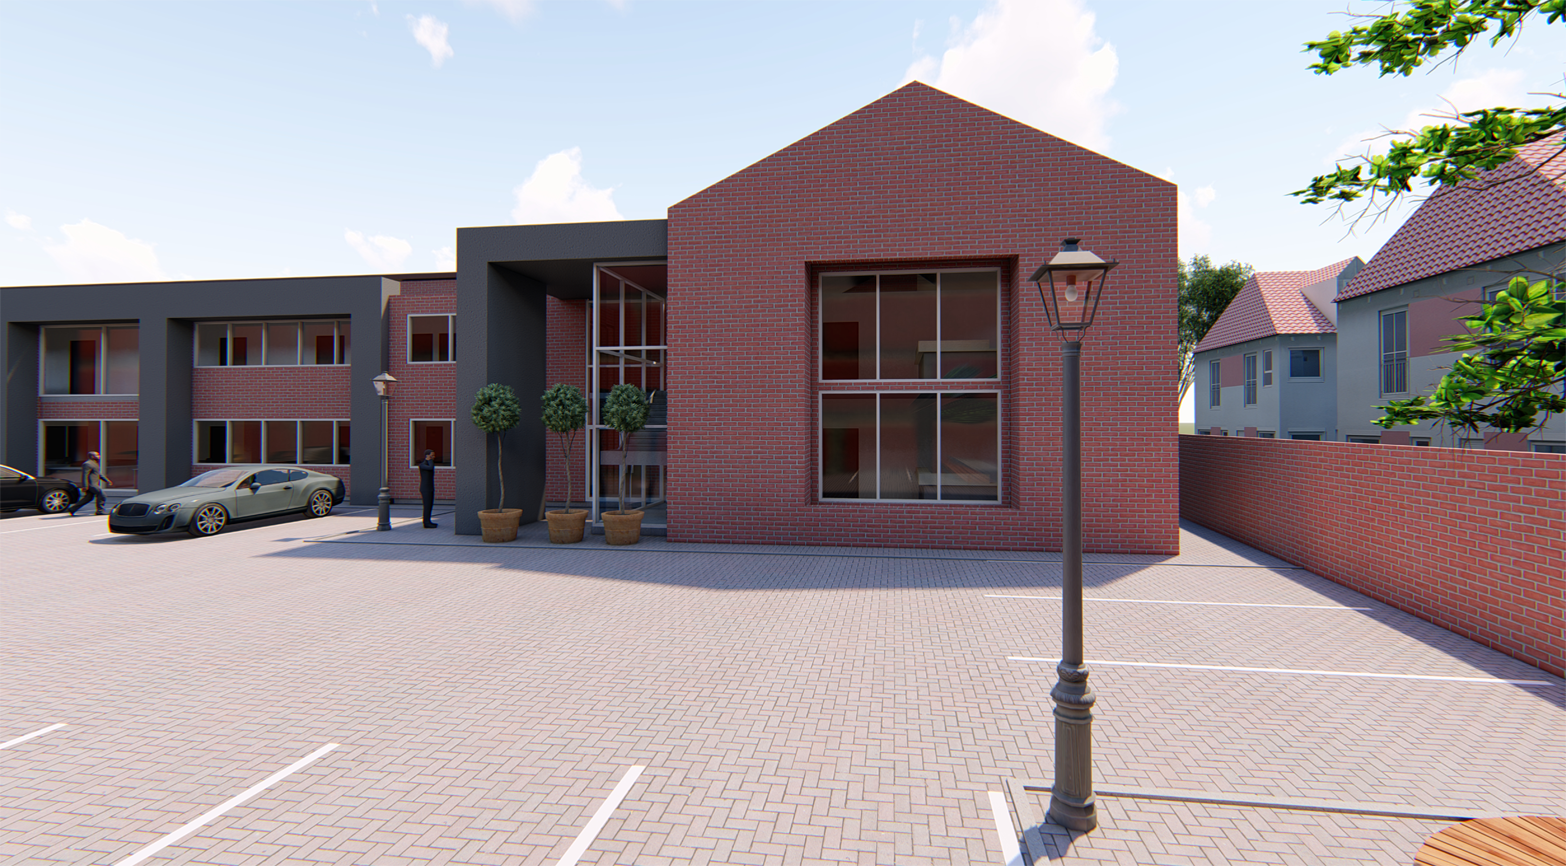 Secunda offices 1